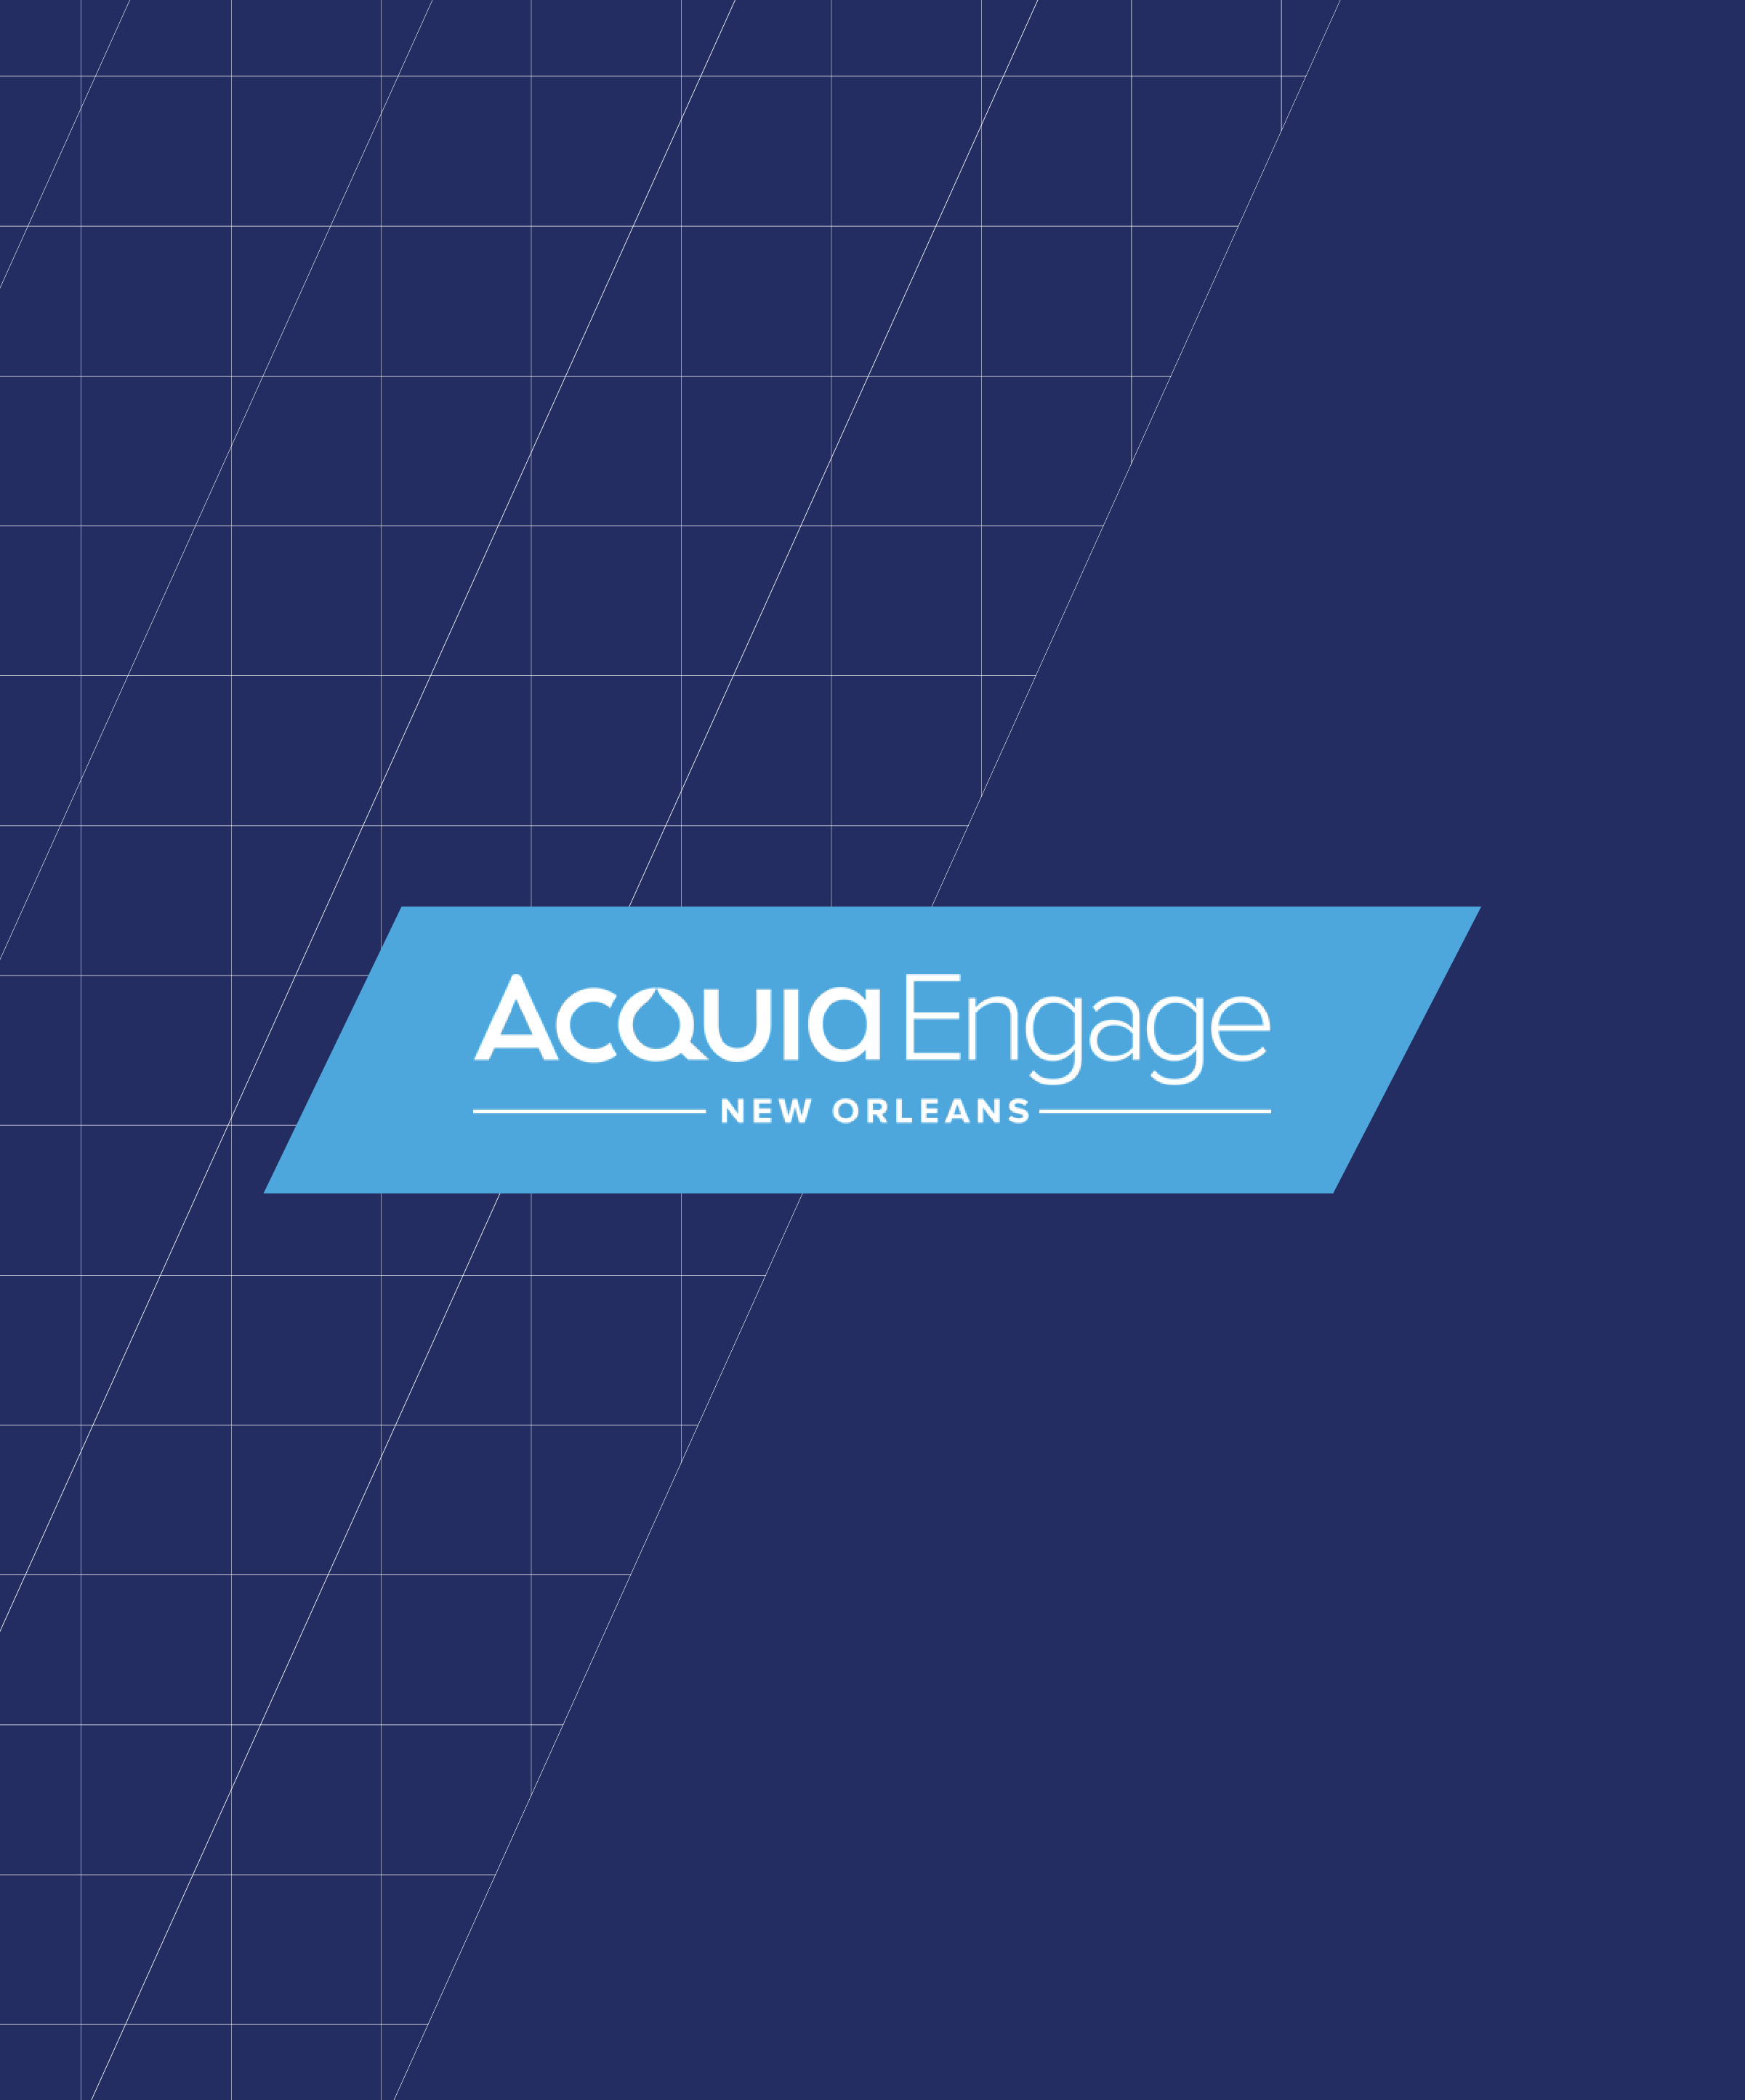 Acquia Engage NOLA Teaser